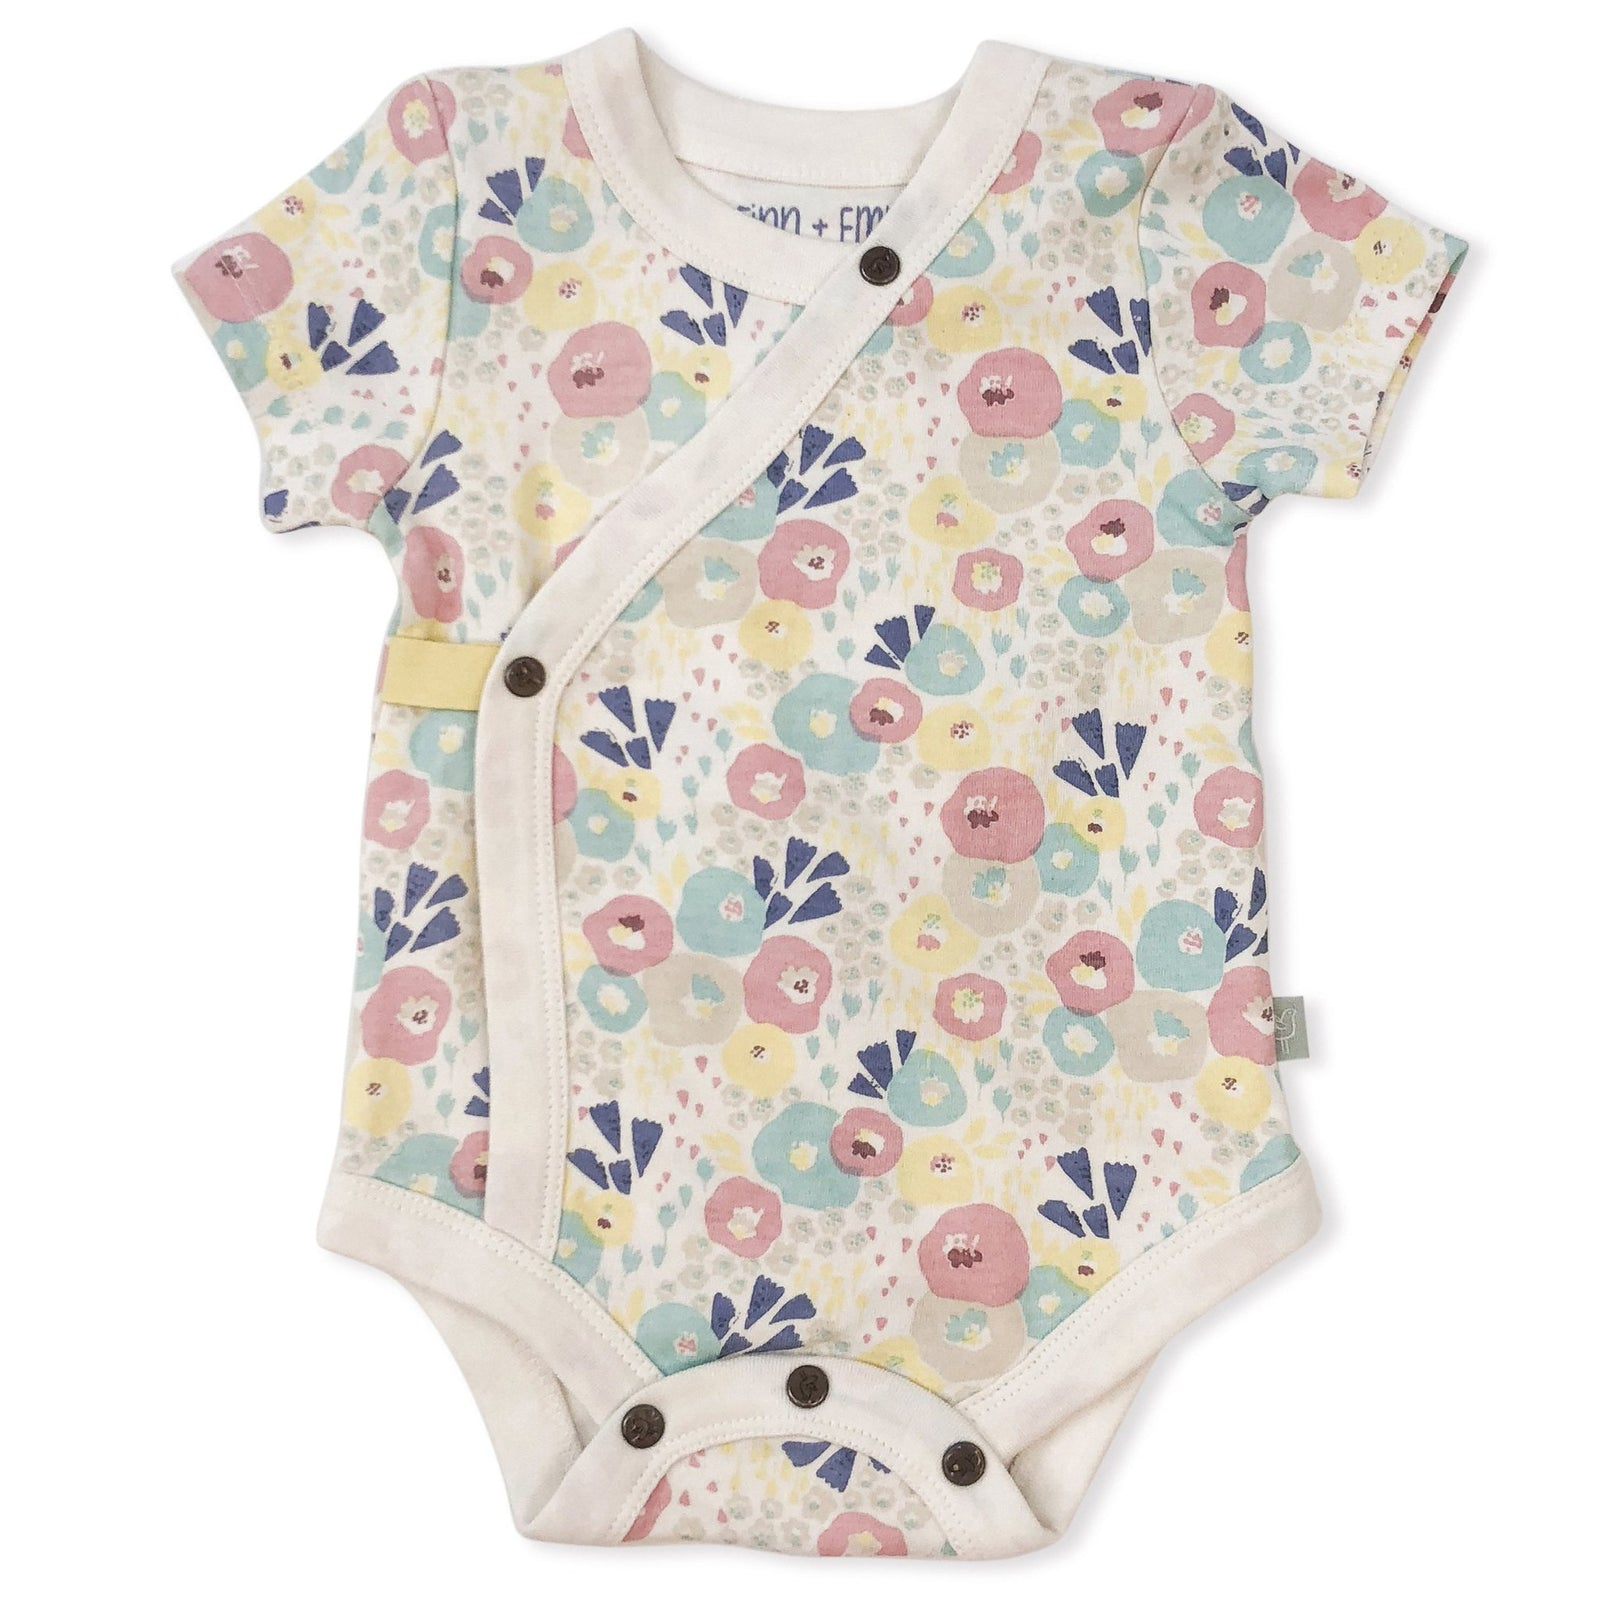 Finn and Emma Organic Cotton Floral Print Onesie